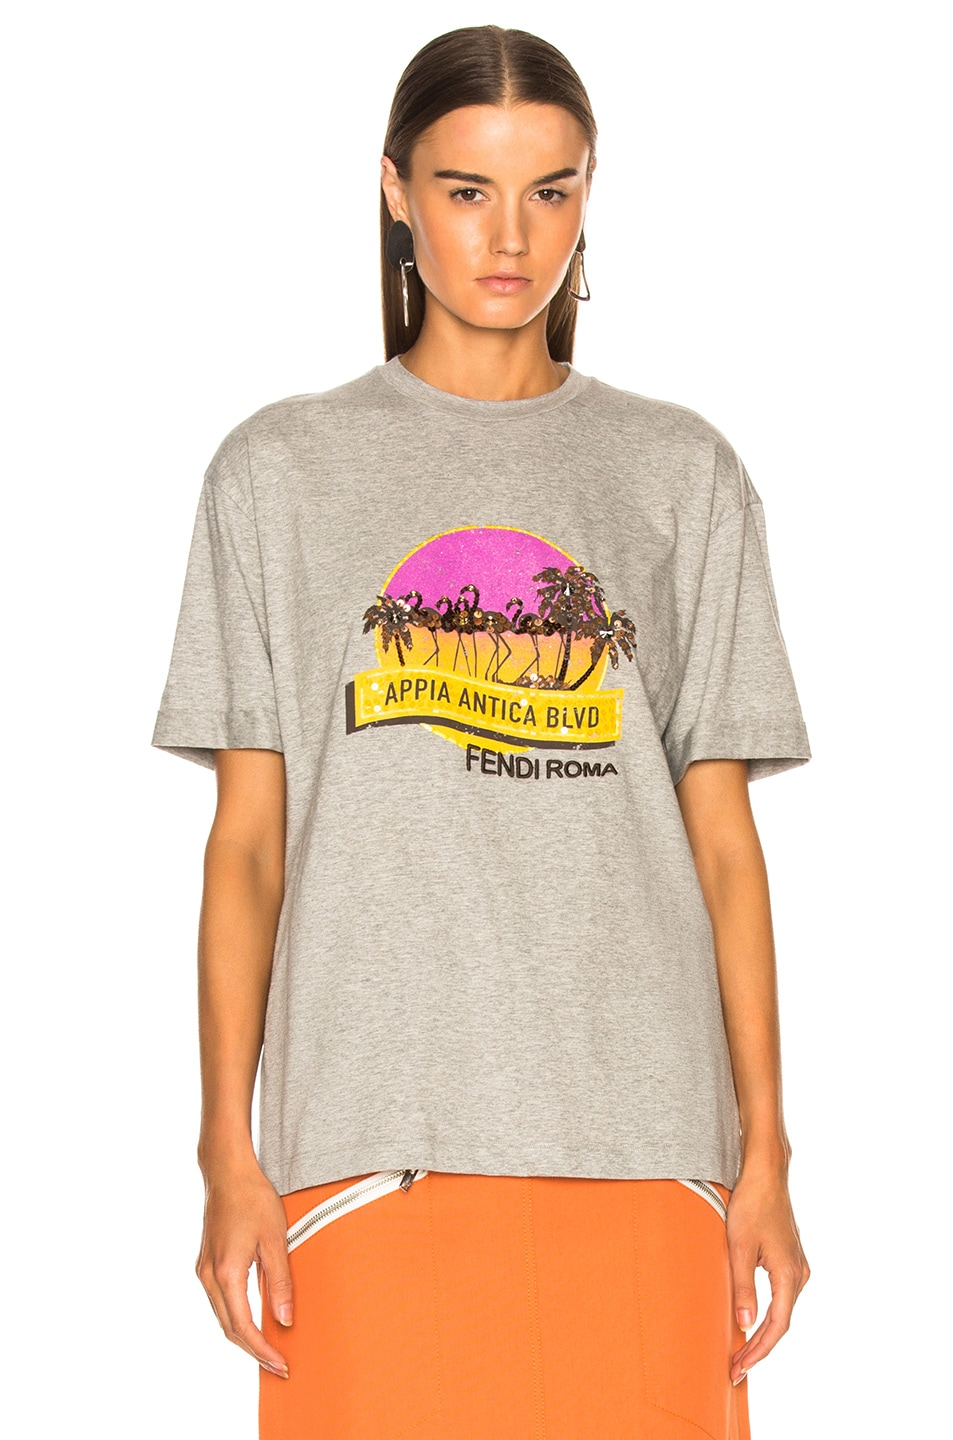 Image 2 of Fendi Applia Antica Boulevard Embellished Graphic Tee in Grey